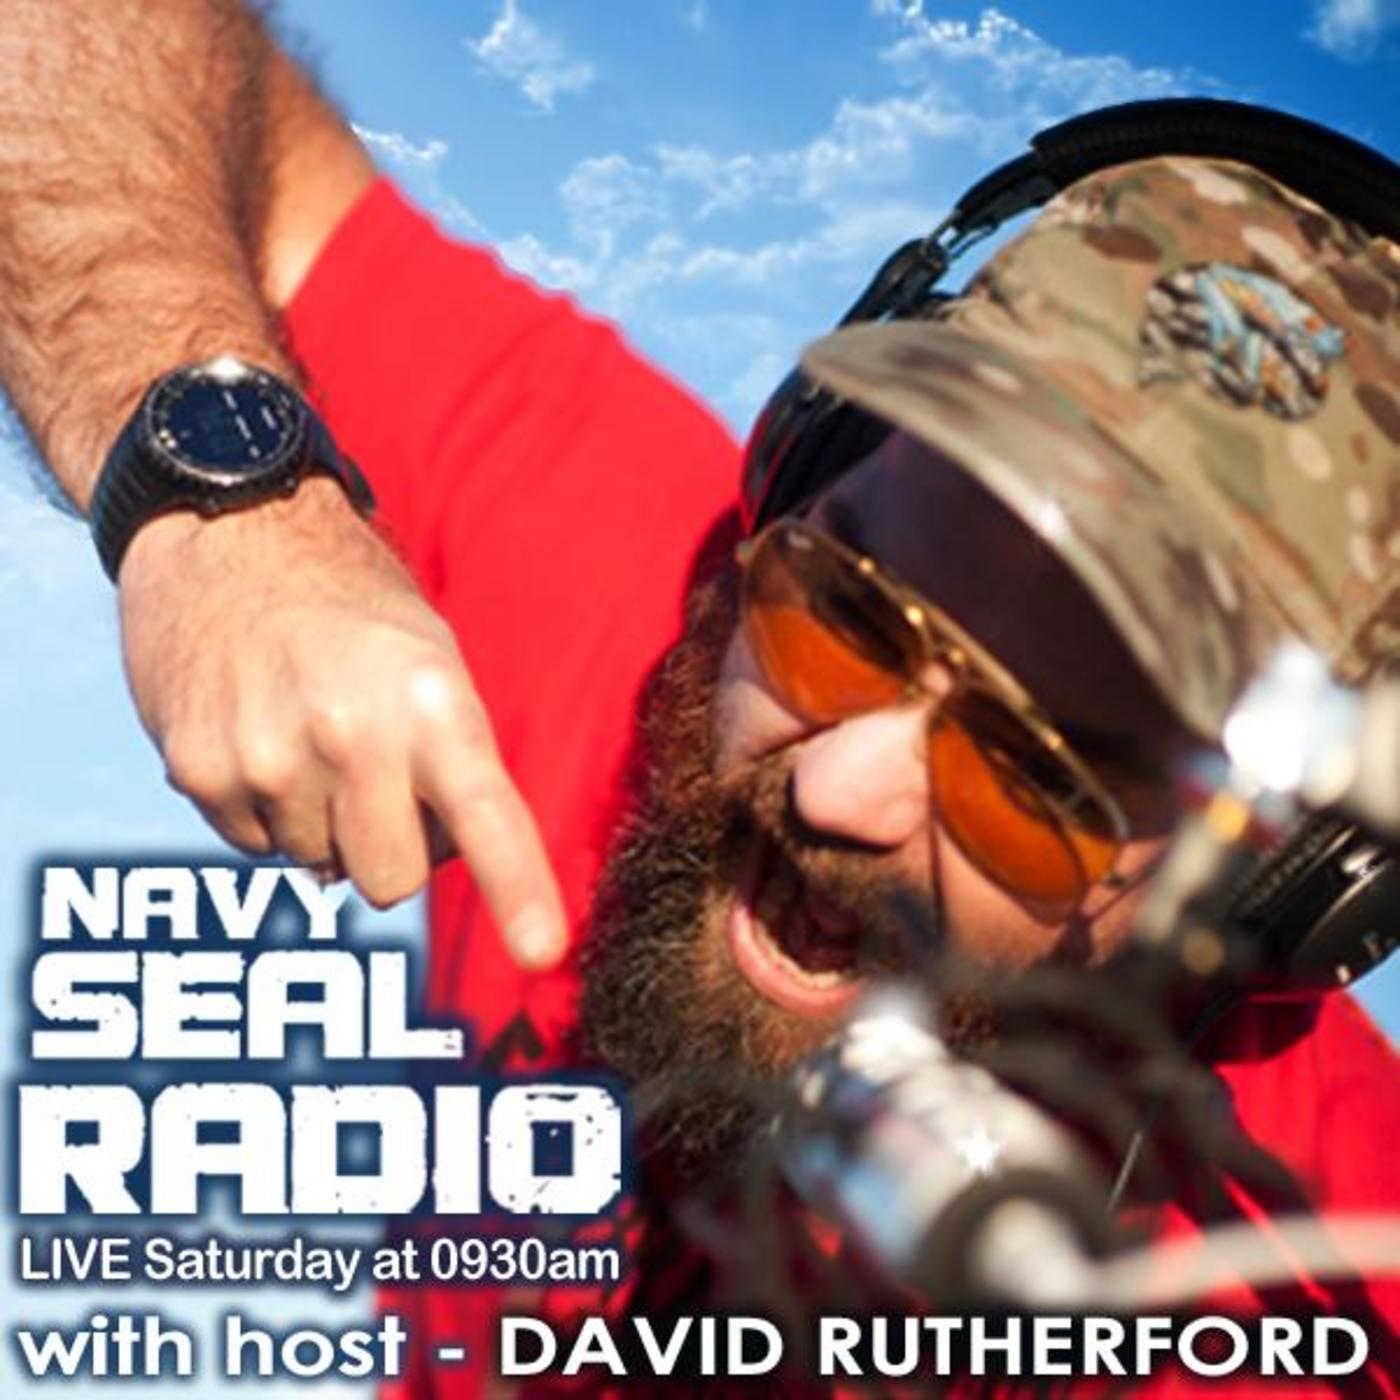 Navy SEAL Radio with David Rutherford